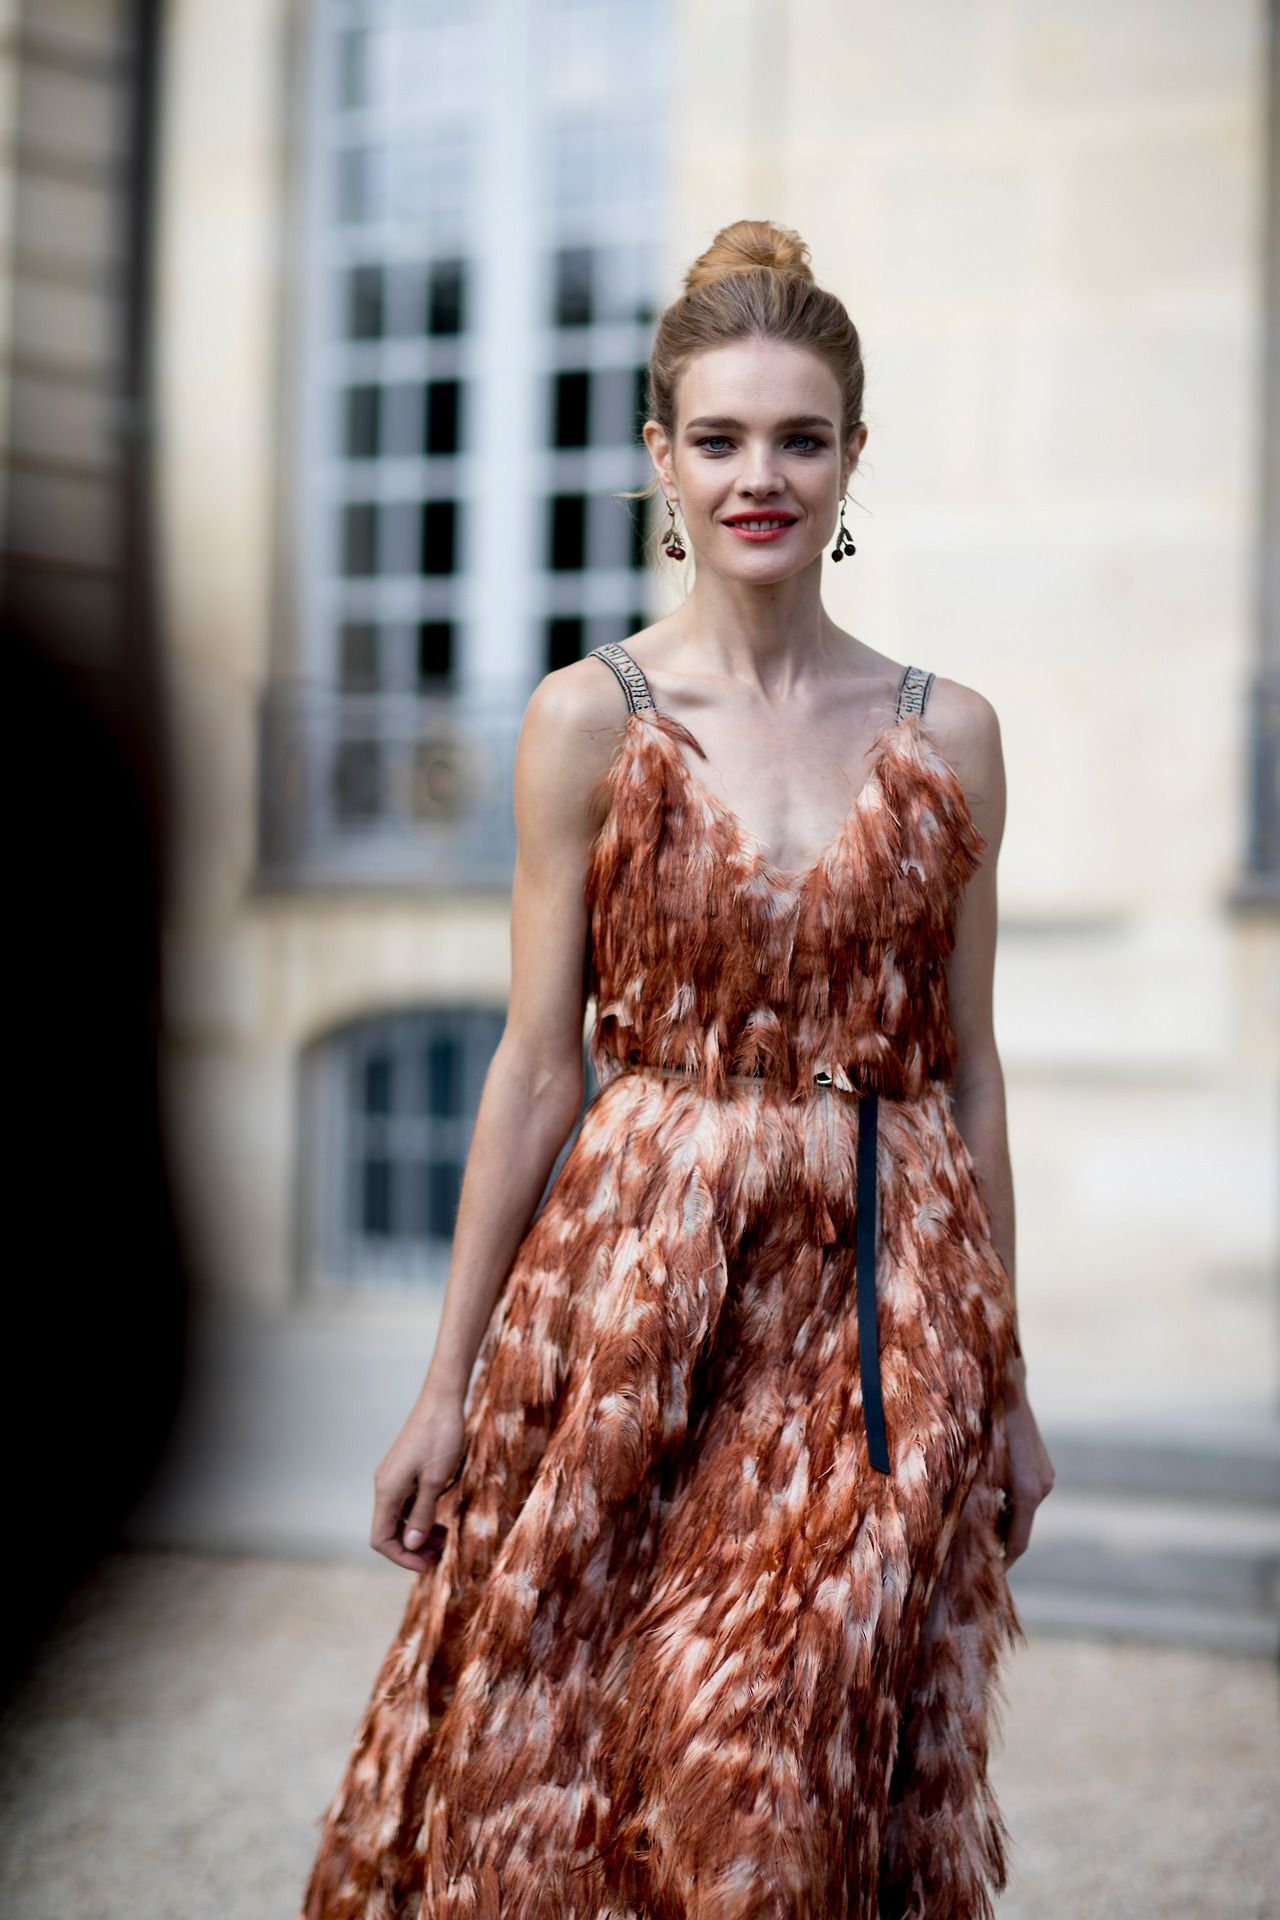 """b854406196db8 streets-couture  """"Natalia Vodianova at Paris Fashion Week Spring 2018 -  Street Style """" MORE FASHION AND STREET STYLEUse the code EBATES10 for 10%  off on ..."""